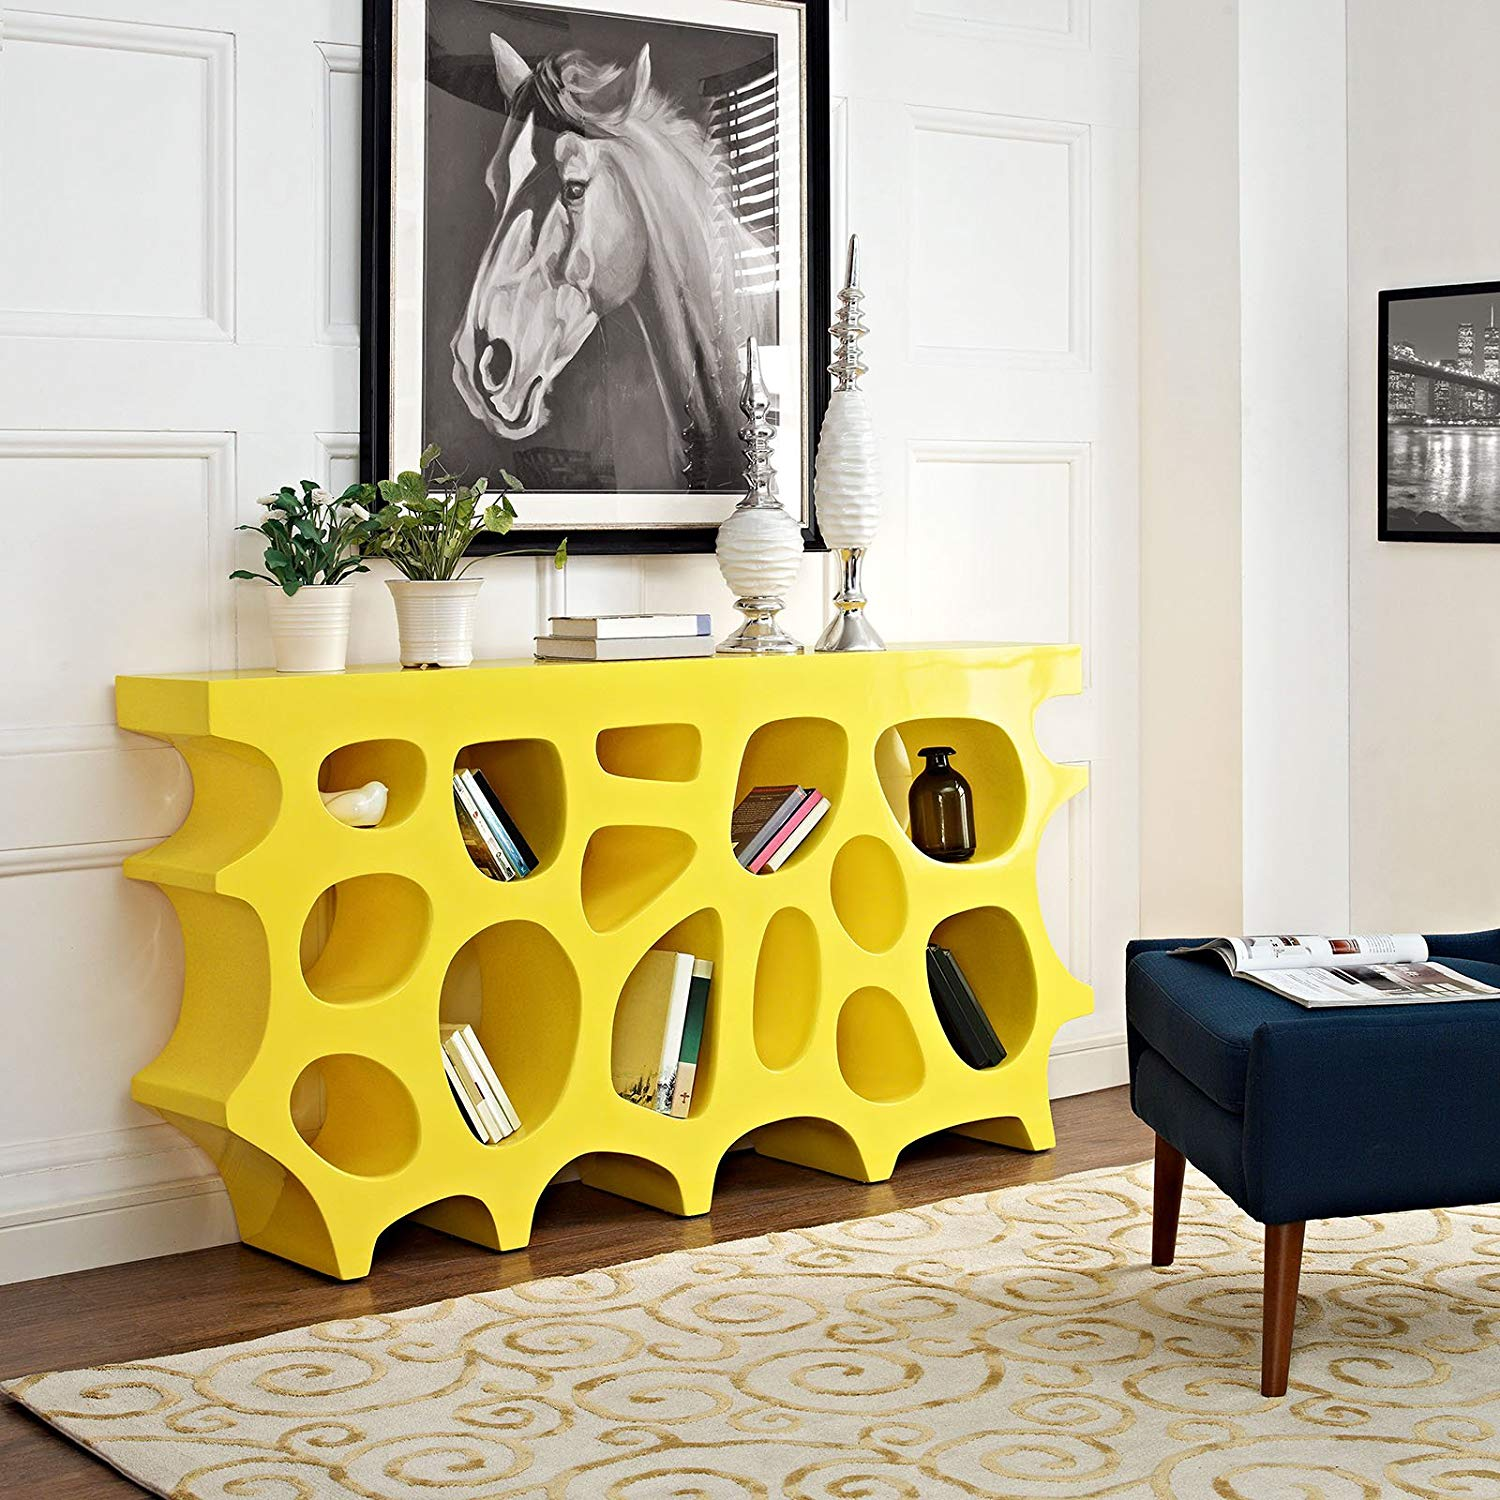 creative-modern-console-table-sculptural-bright-yellow-color-with-cubbies